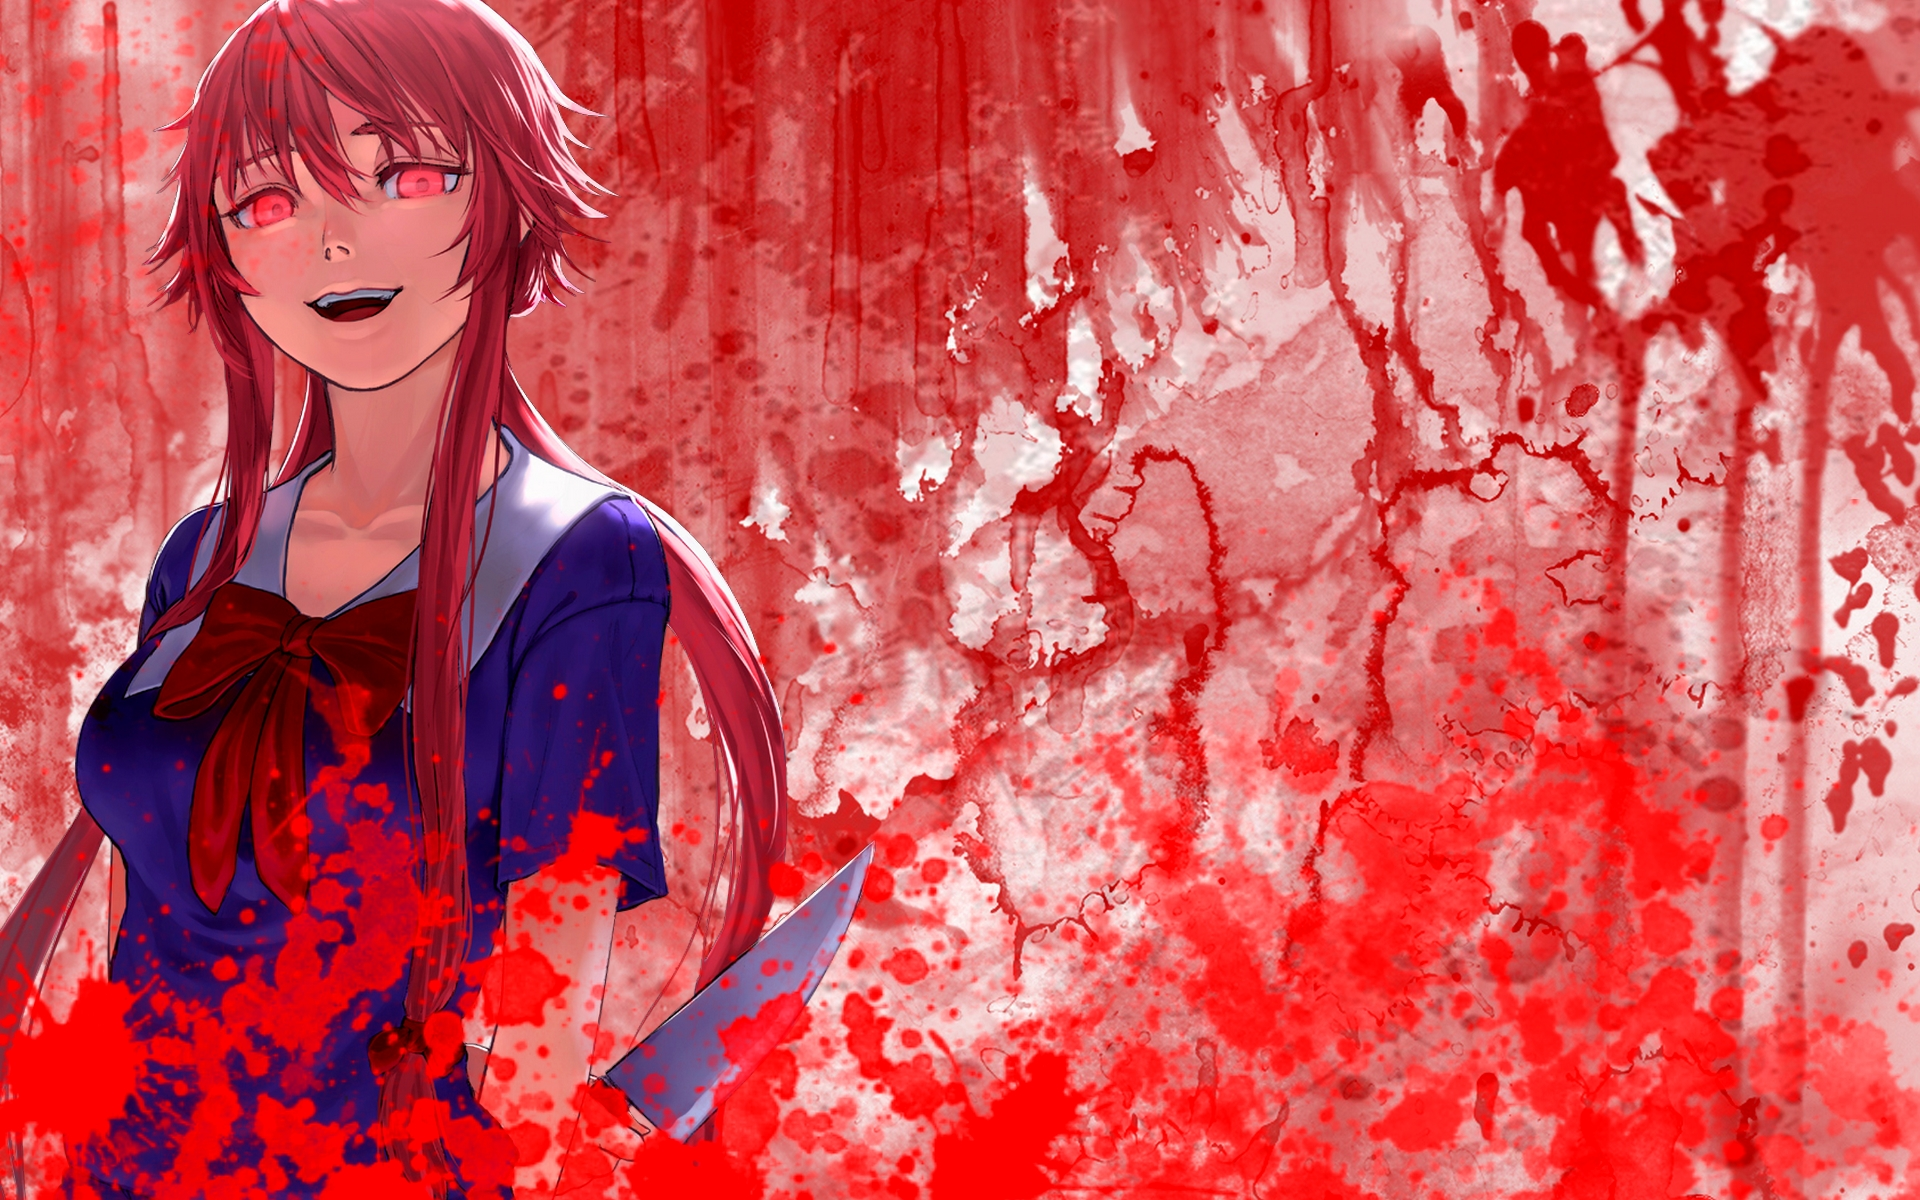 Future Diary Wallpaper: Mirai Nikki Yuno Wallpaper